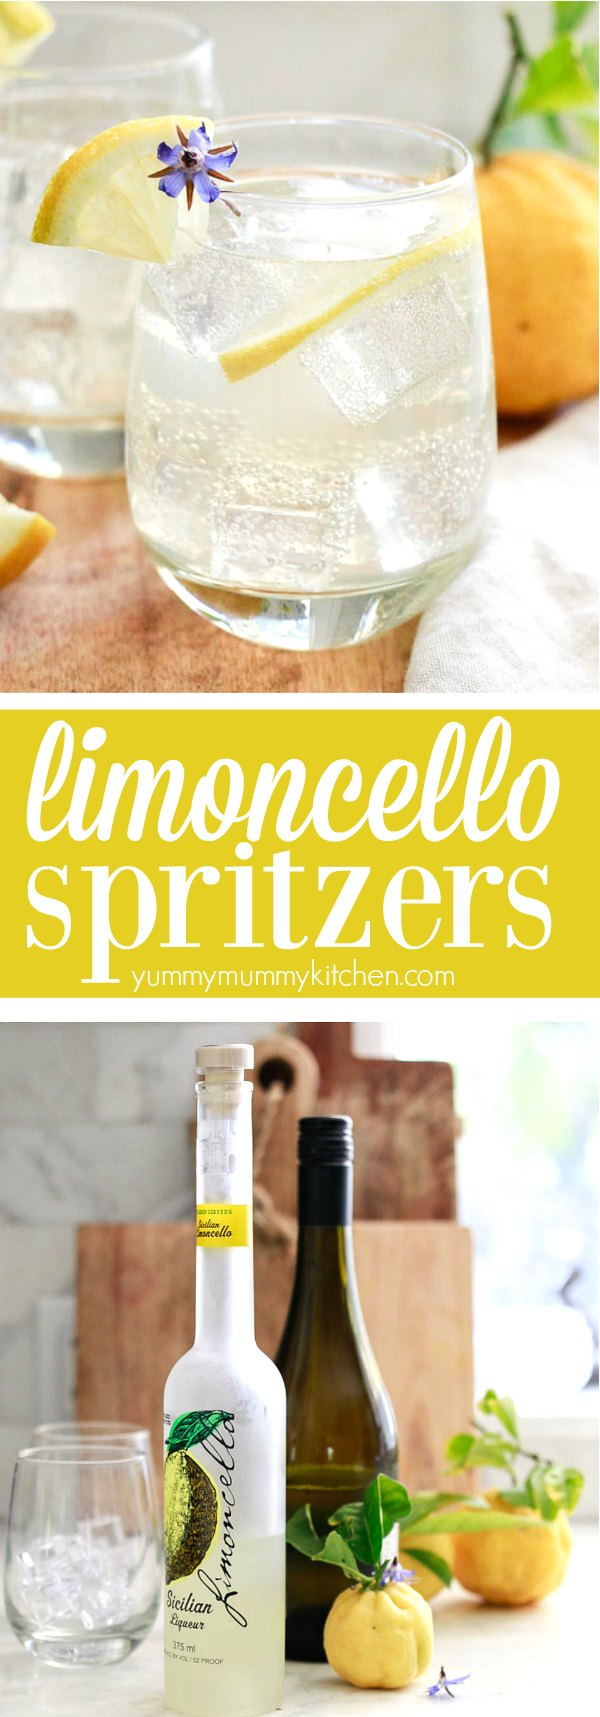 Limoncello spritzers are such fun and tasty Italian inspired cocktails! These easy limoncello prosecco spritzers are the perfect drink for spring and summer parties!